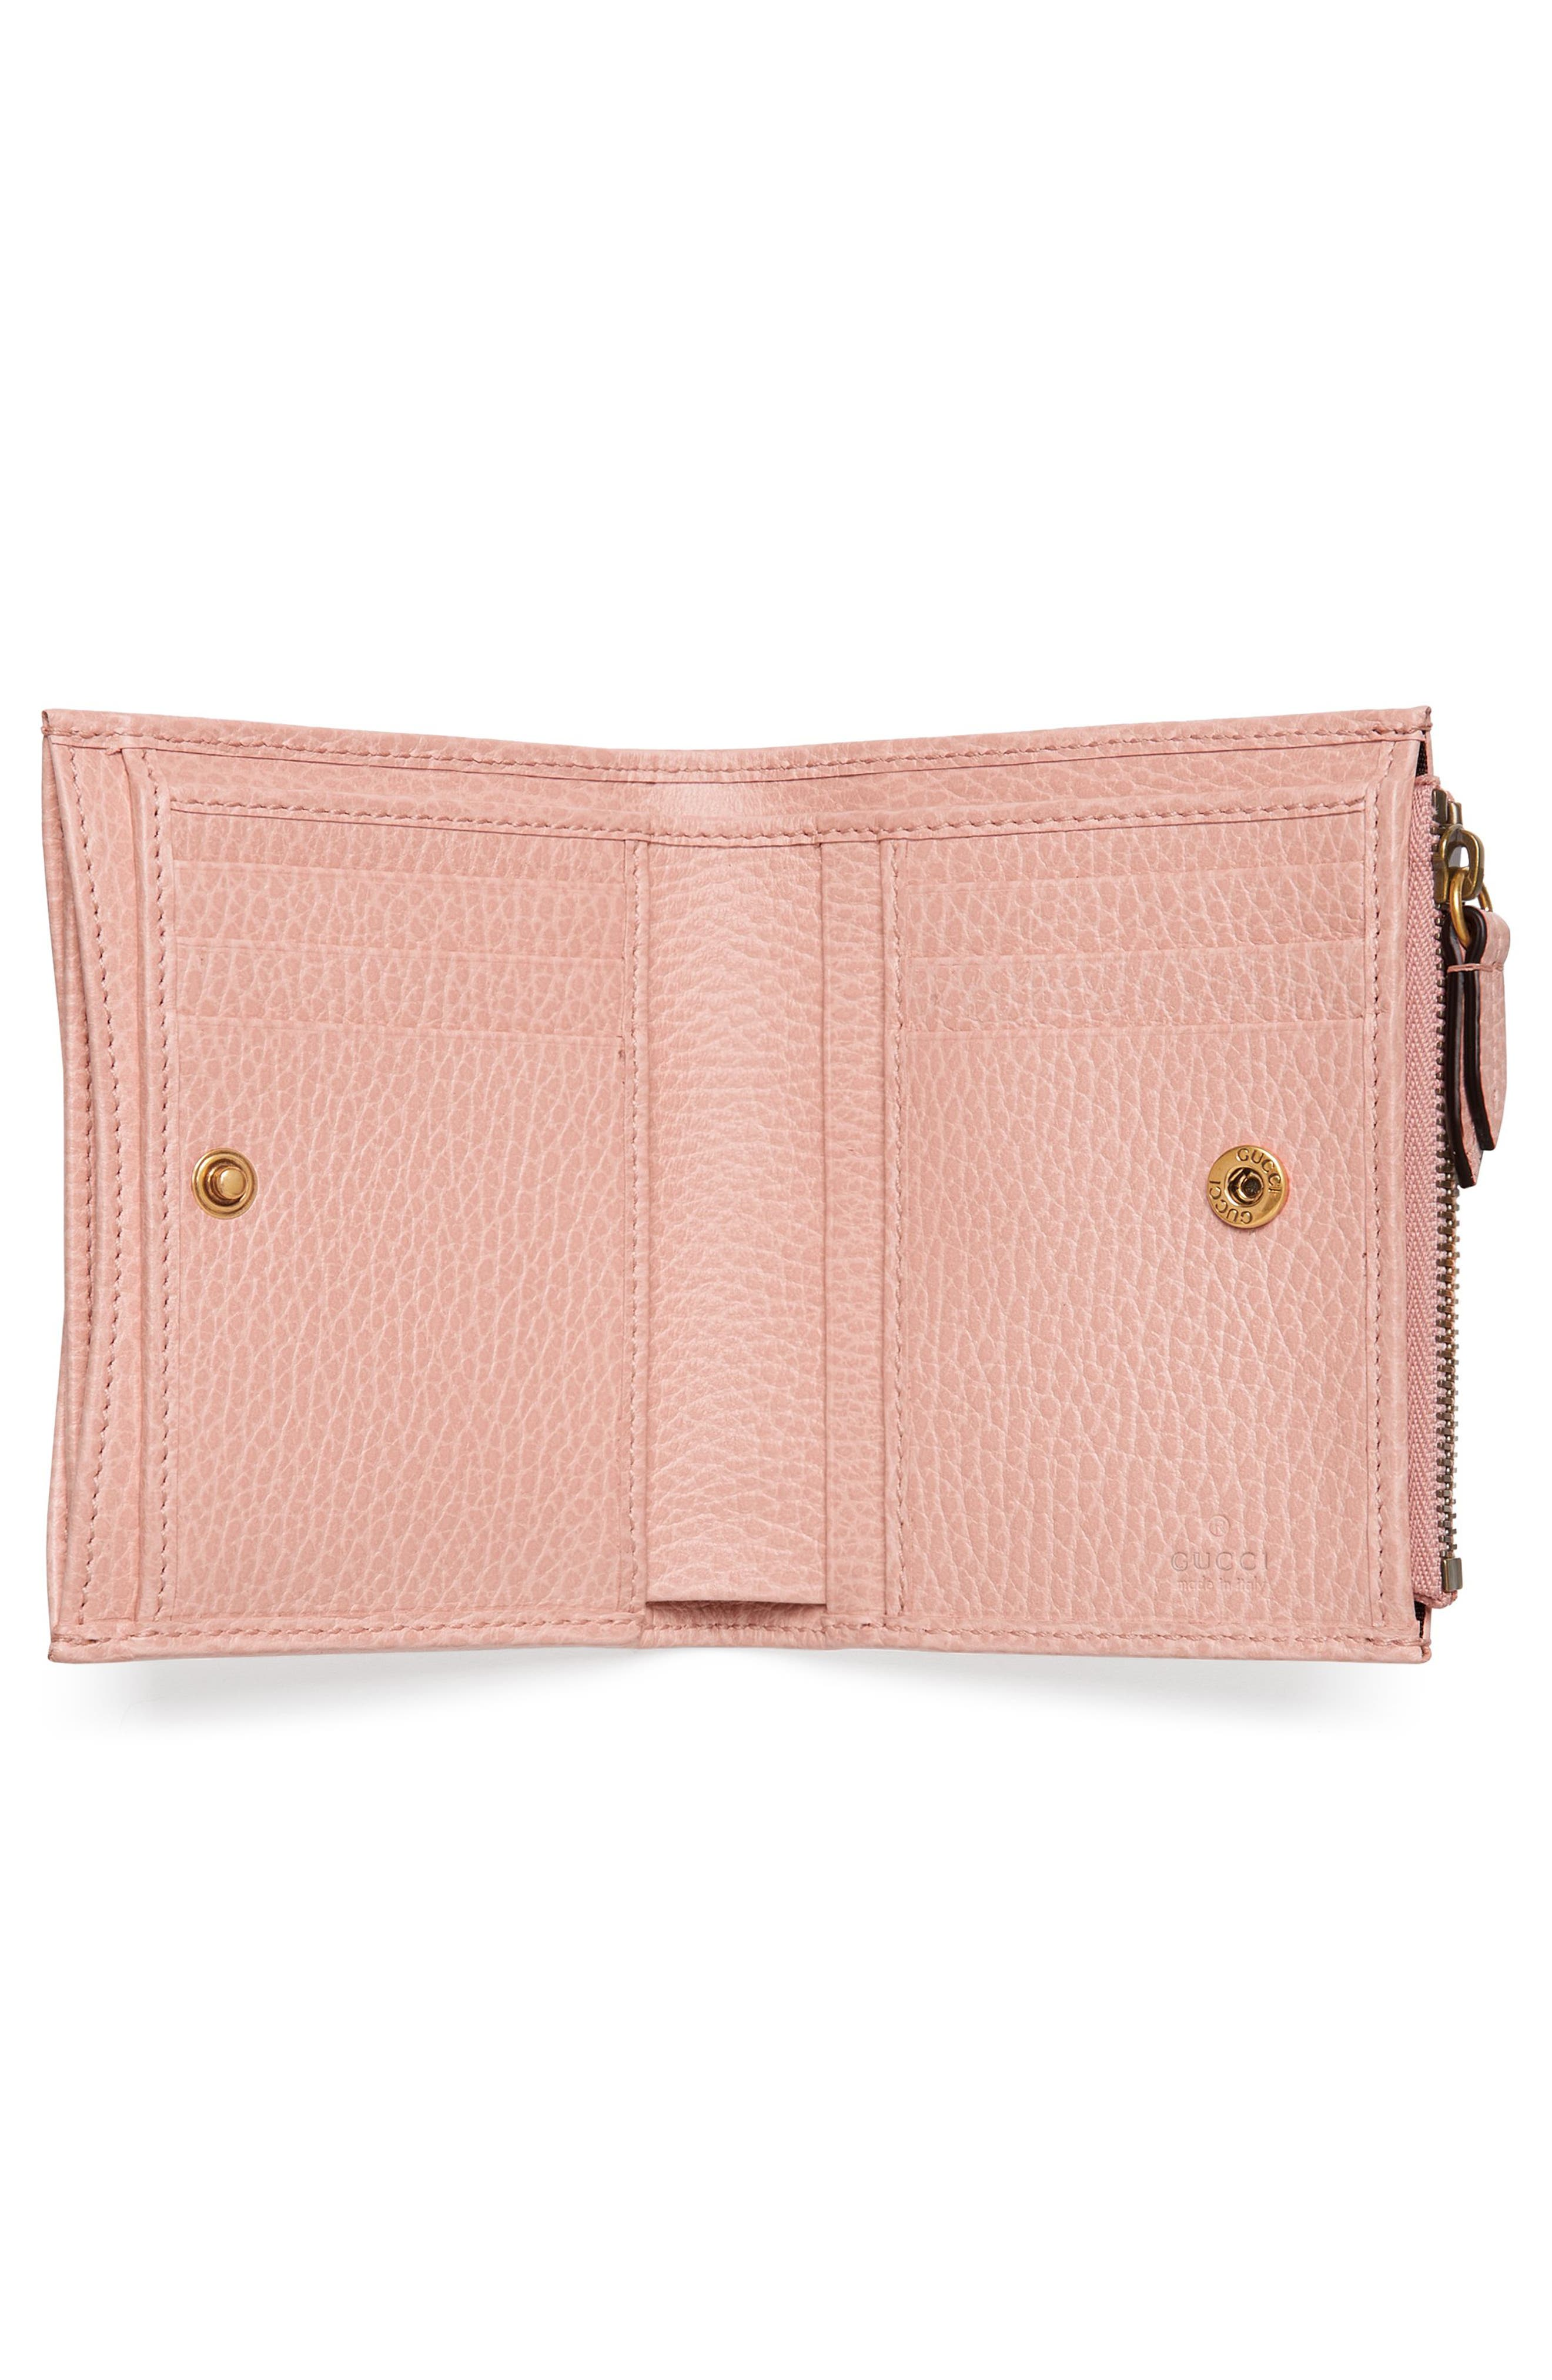 Farfalla Leather Wallet,                             Alternate thumbnail 4, color,                             Perfect Pink/ Crystal